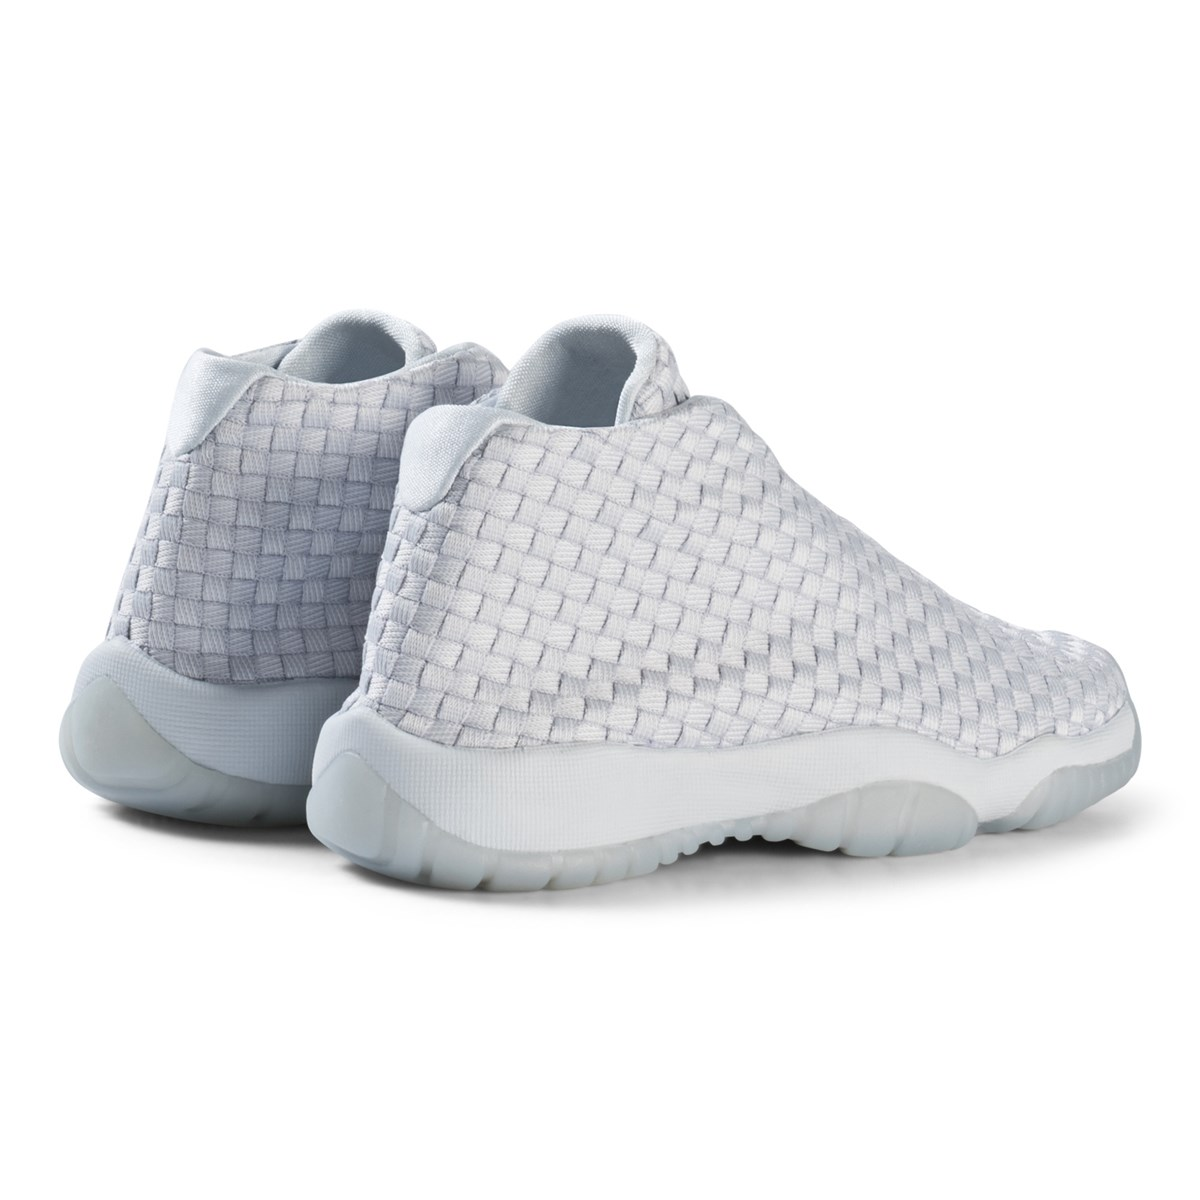 4e087e9b09f Air Jordan Pure Platinum Air Jordan Future Trainers